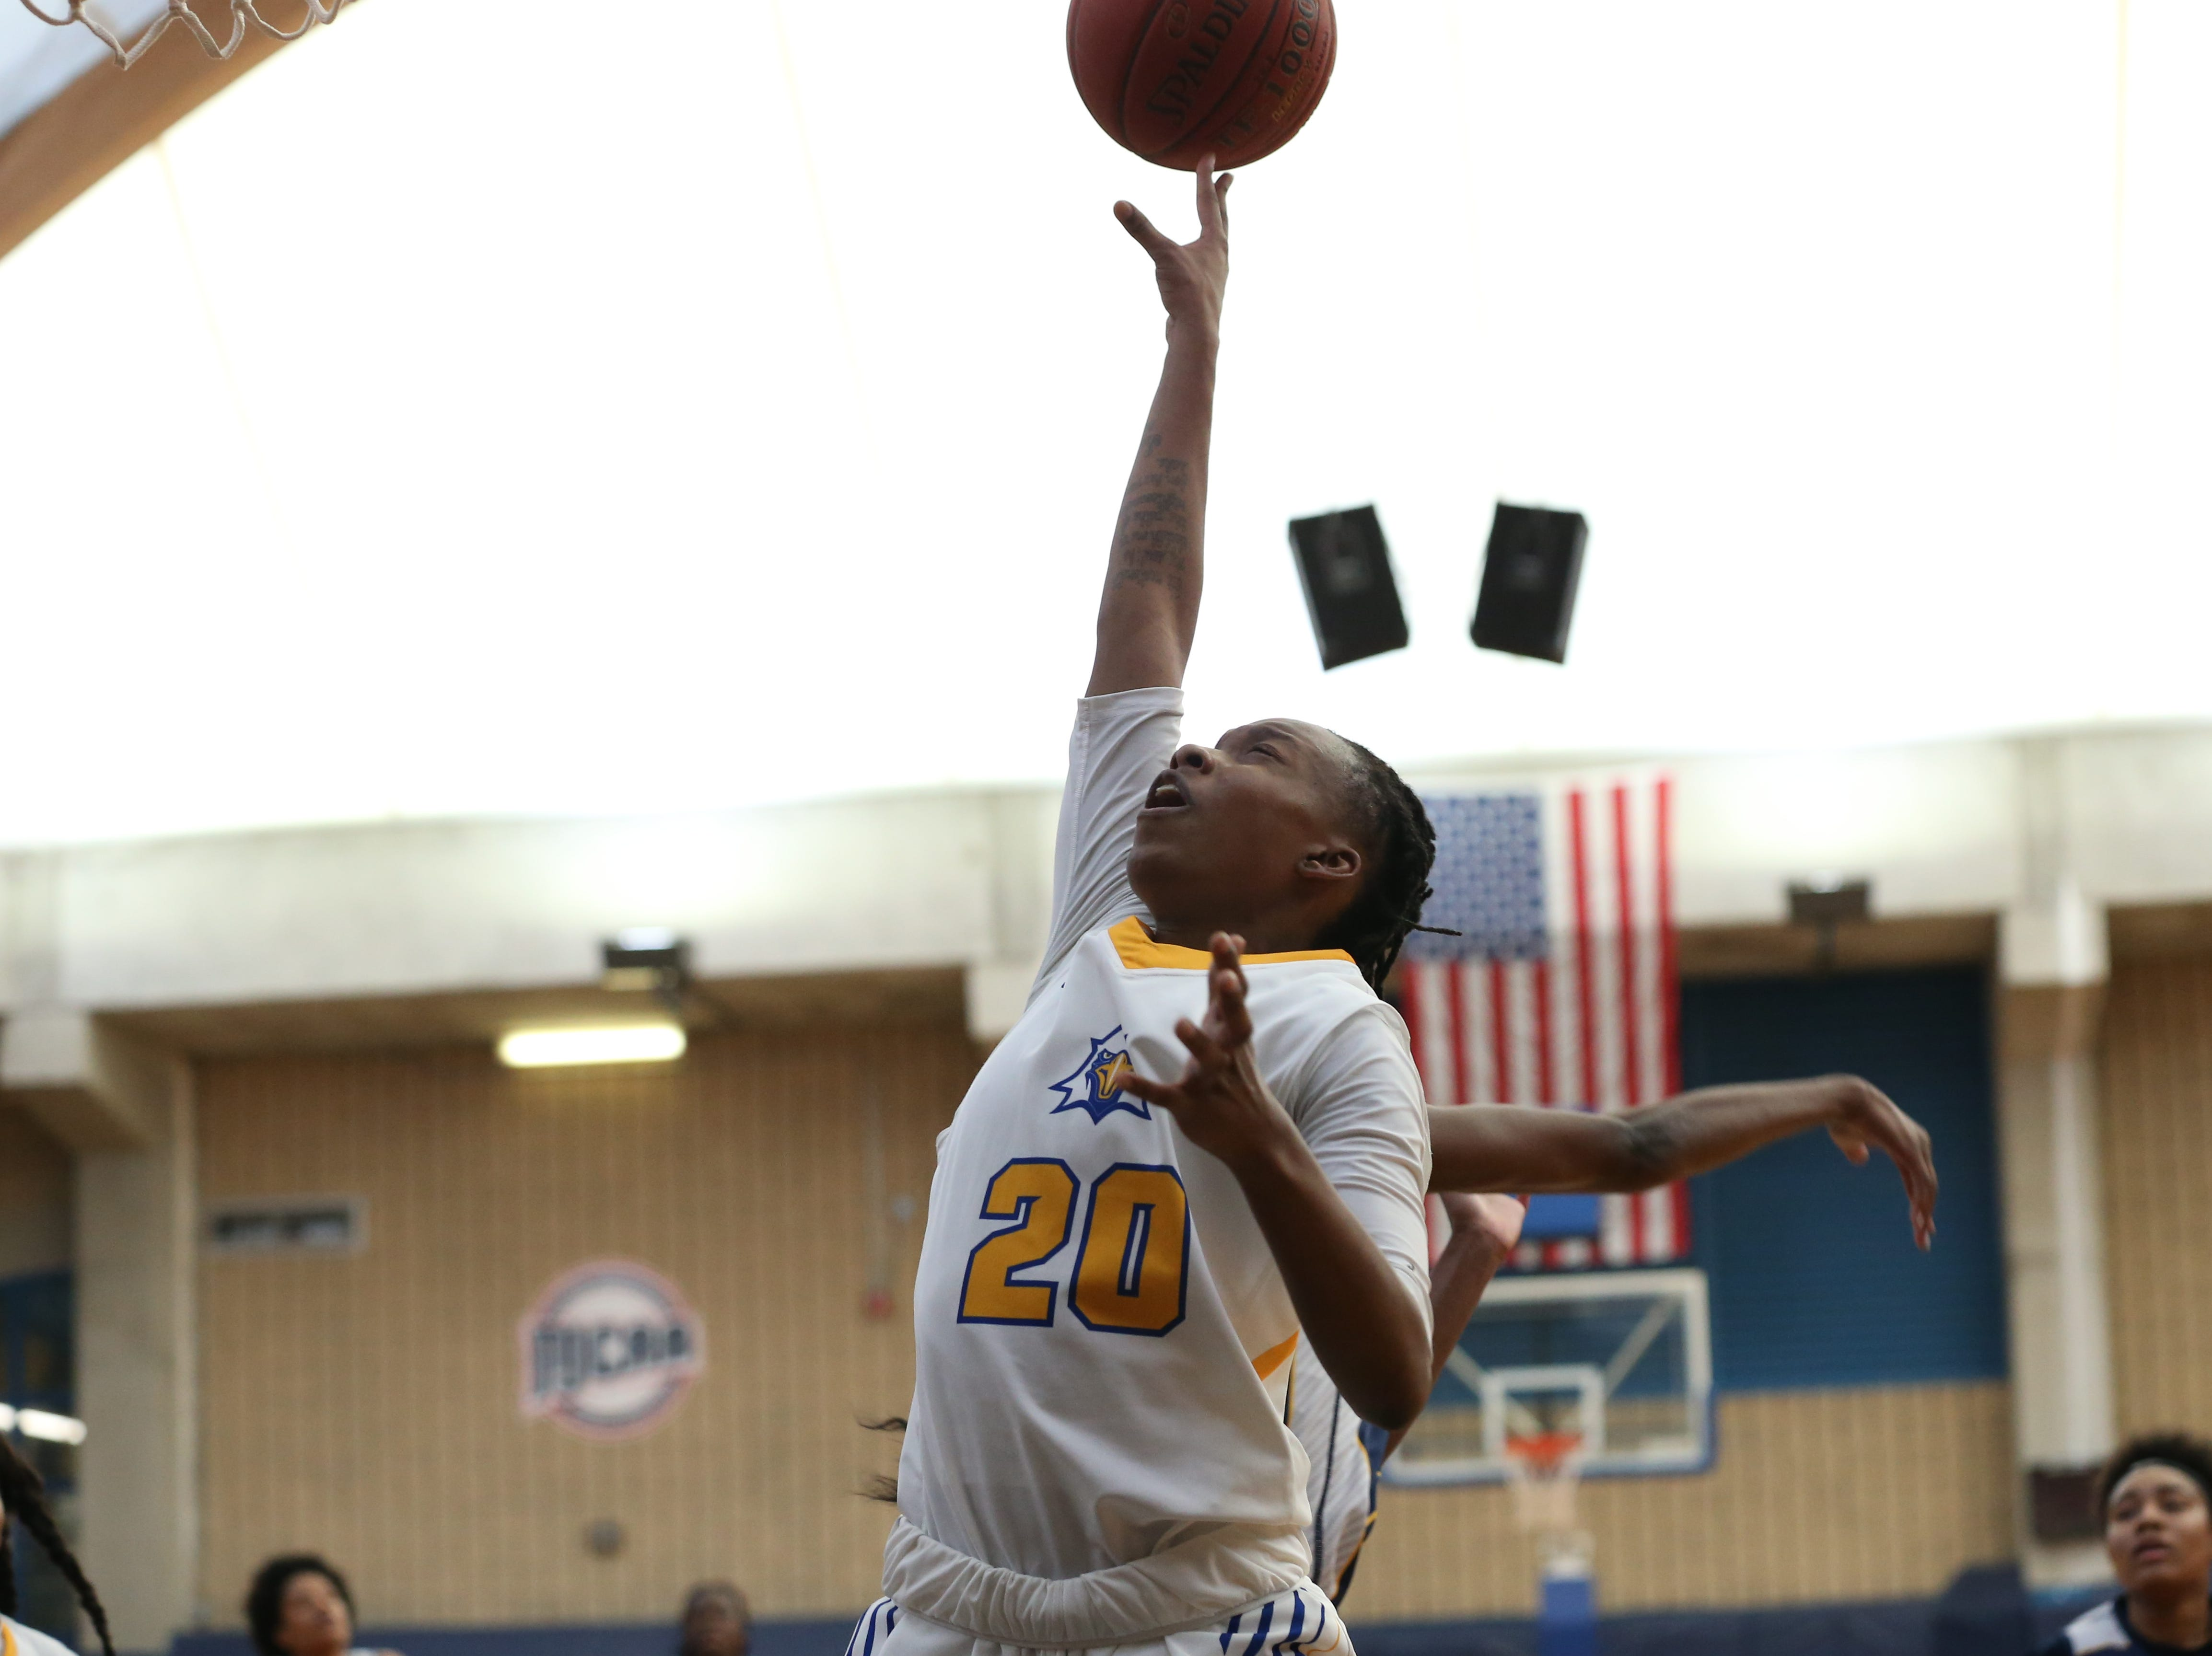 Tallahassee Community College Eagles guard Daisha Bradford (20) shoots from inside the paint. The Tallahassee Community College Eagles host the Gulf Coast State College Commodores in a conference match-up in the Eagledome, Saturday, Jan. 5, 2019.